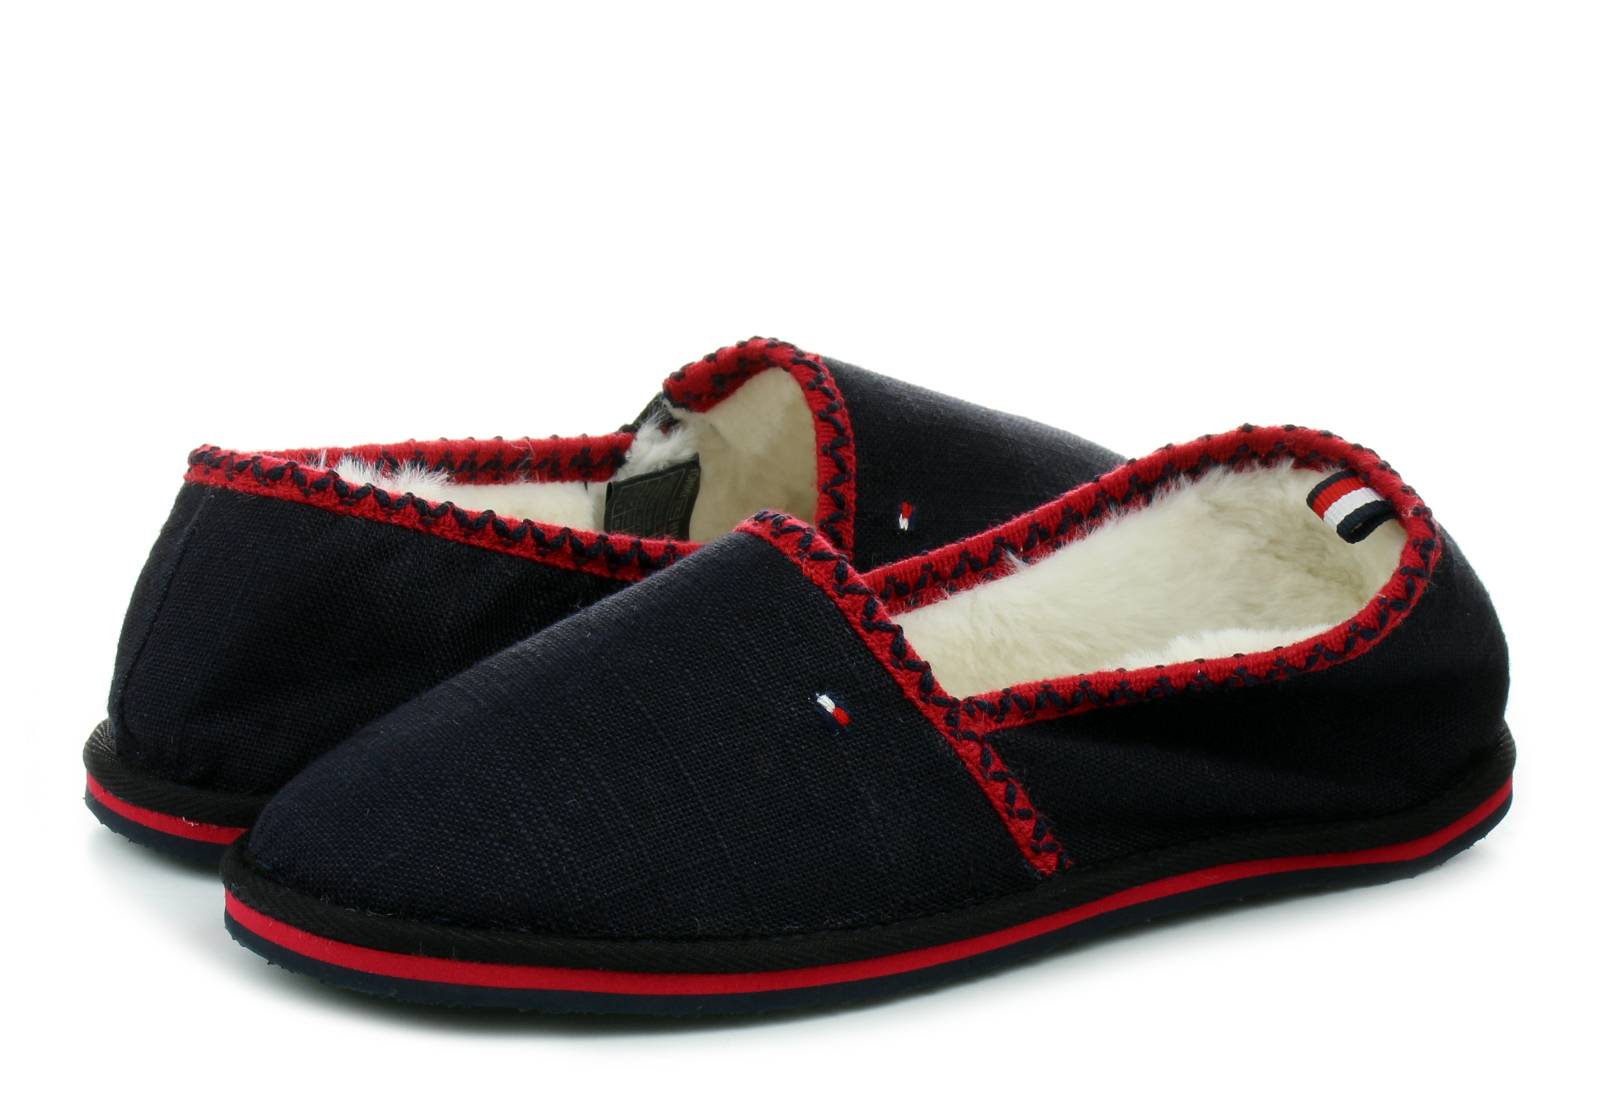 tommy hilfiger slippers pegasus 1d 17f 1699 403. Black Bedroom Furniture Sets. Home Design Ideas